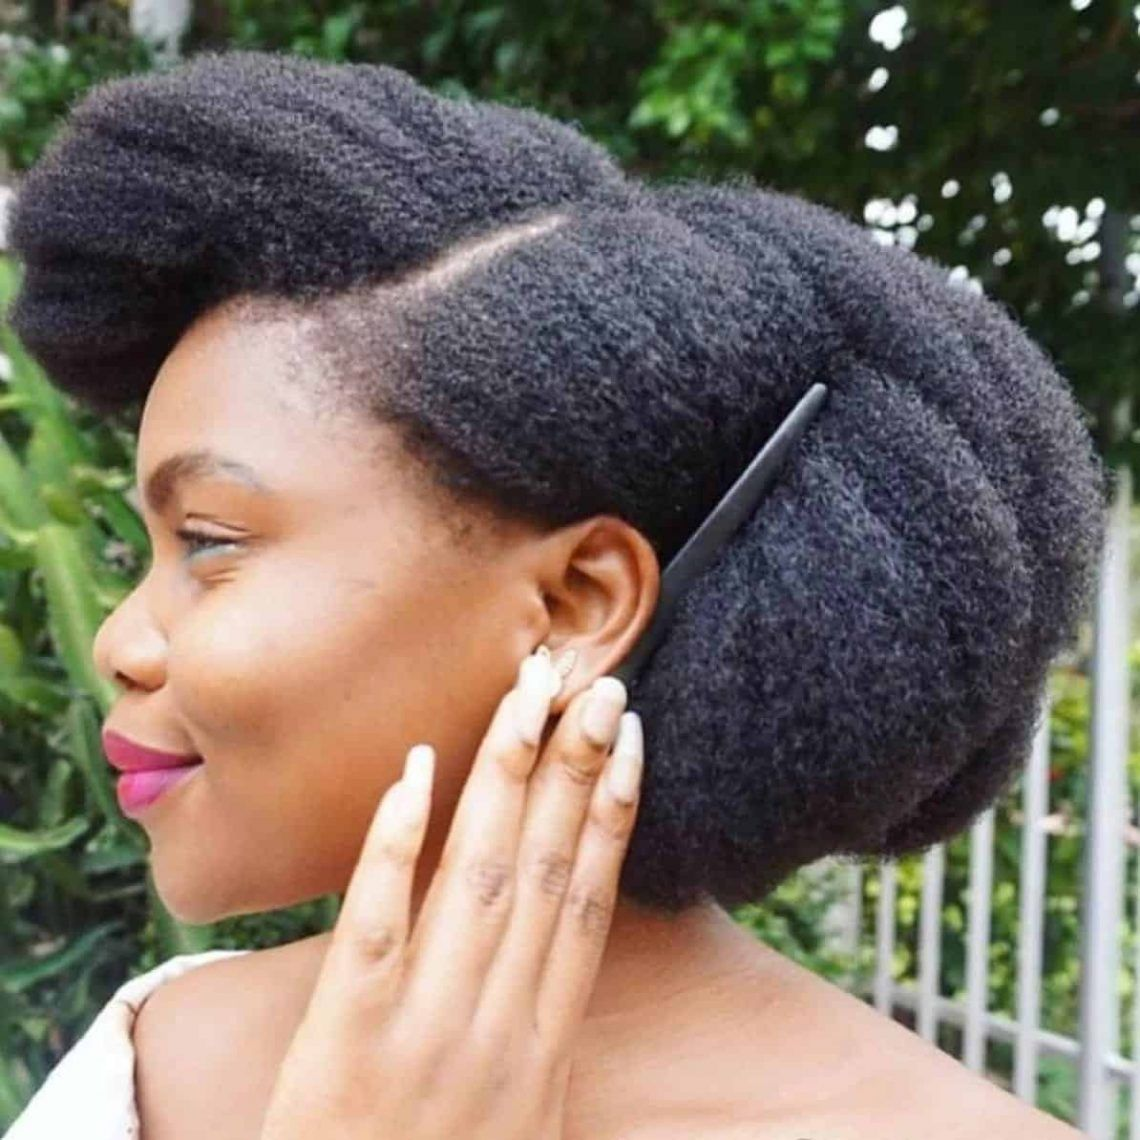 40 Different Ways To Style Your Natural Hair At Home Thrivenaija Baby Hairstyles Medium Length Hair Styles Natural Hair Styles